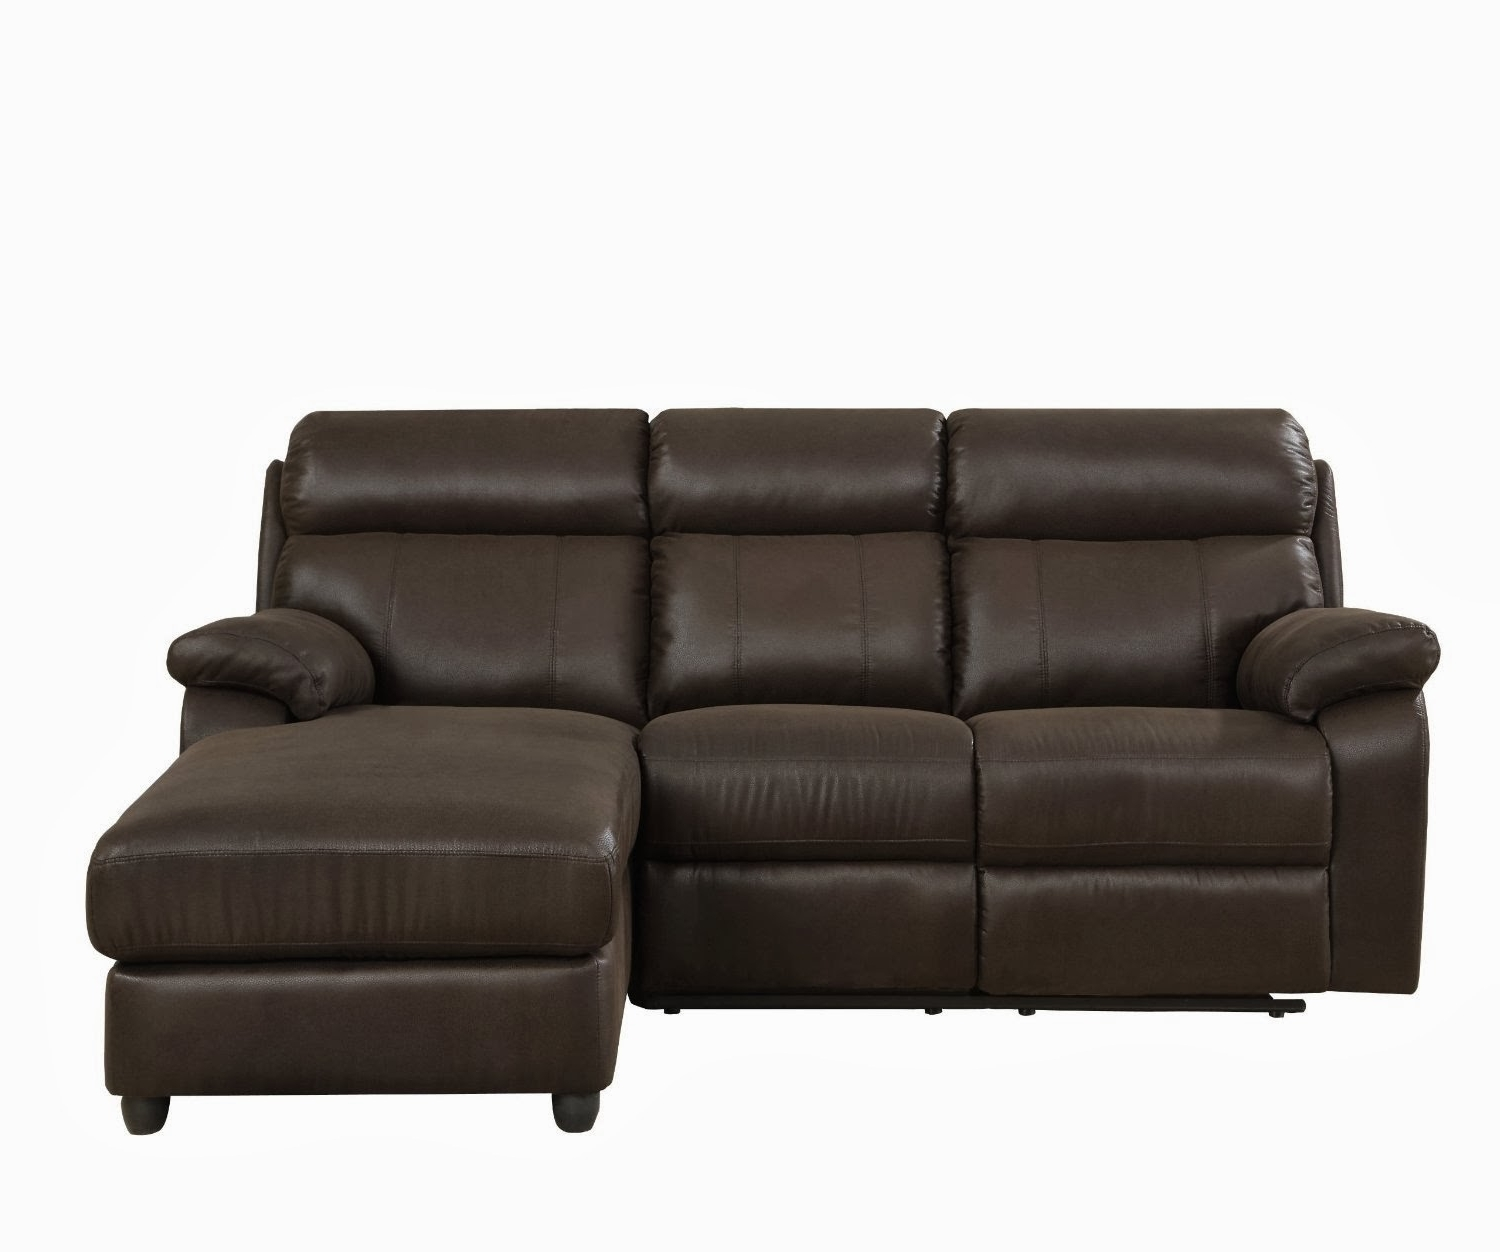 2017 Small High Back Leather Sectional Sofa With Chaise For 3 – Decofurnish For Sectional Sofas With High Backs (View 4 of 15)